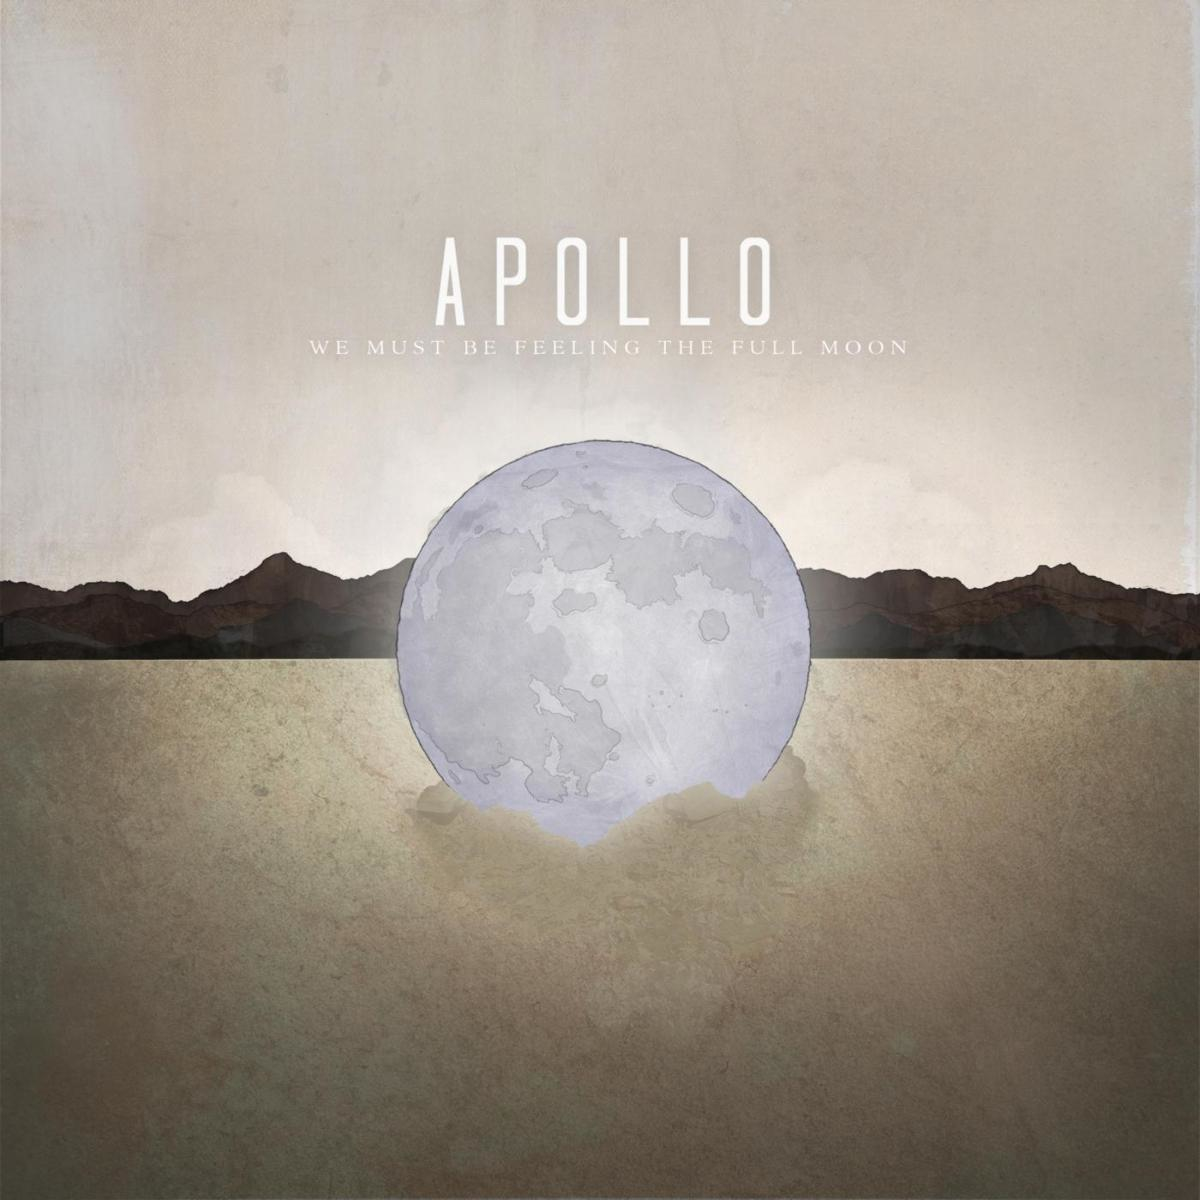 Apollo - We Must Be Feeling The Full Moon (2013)